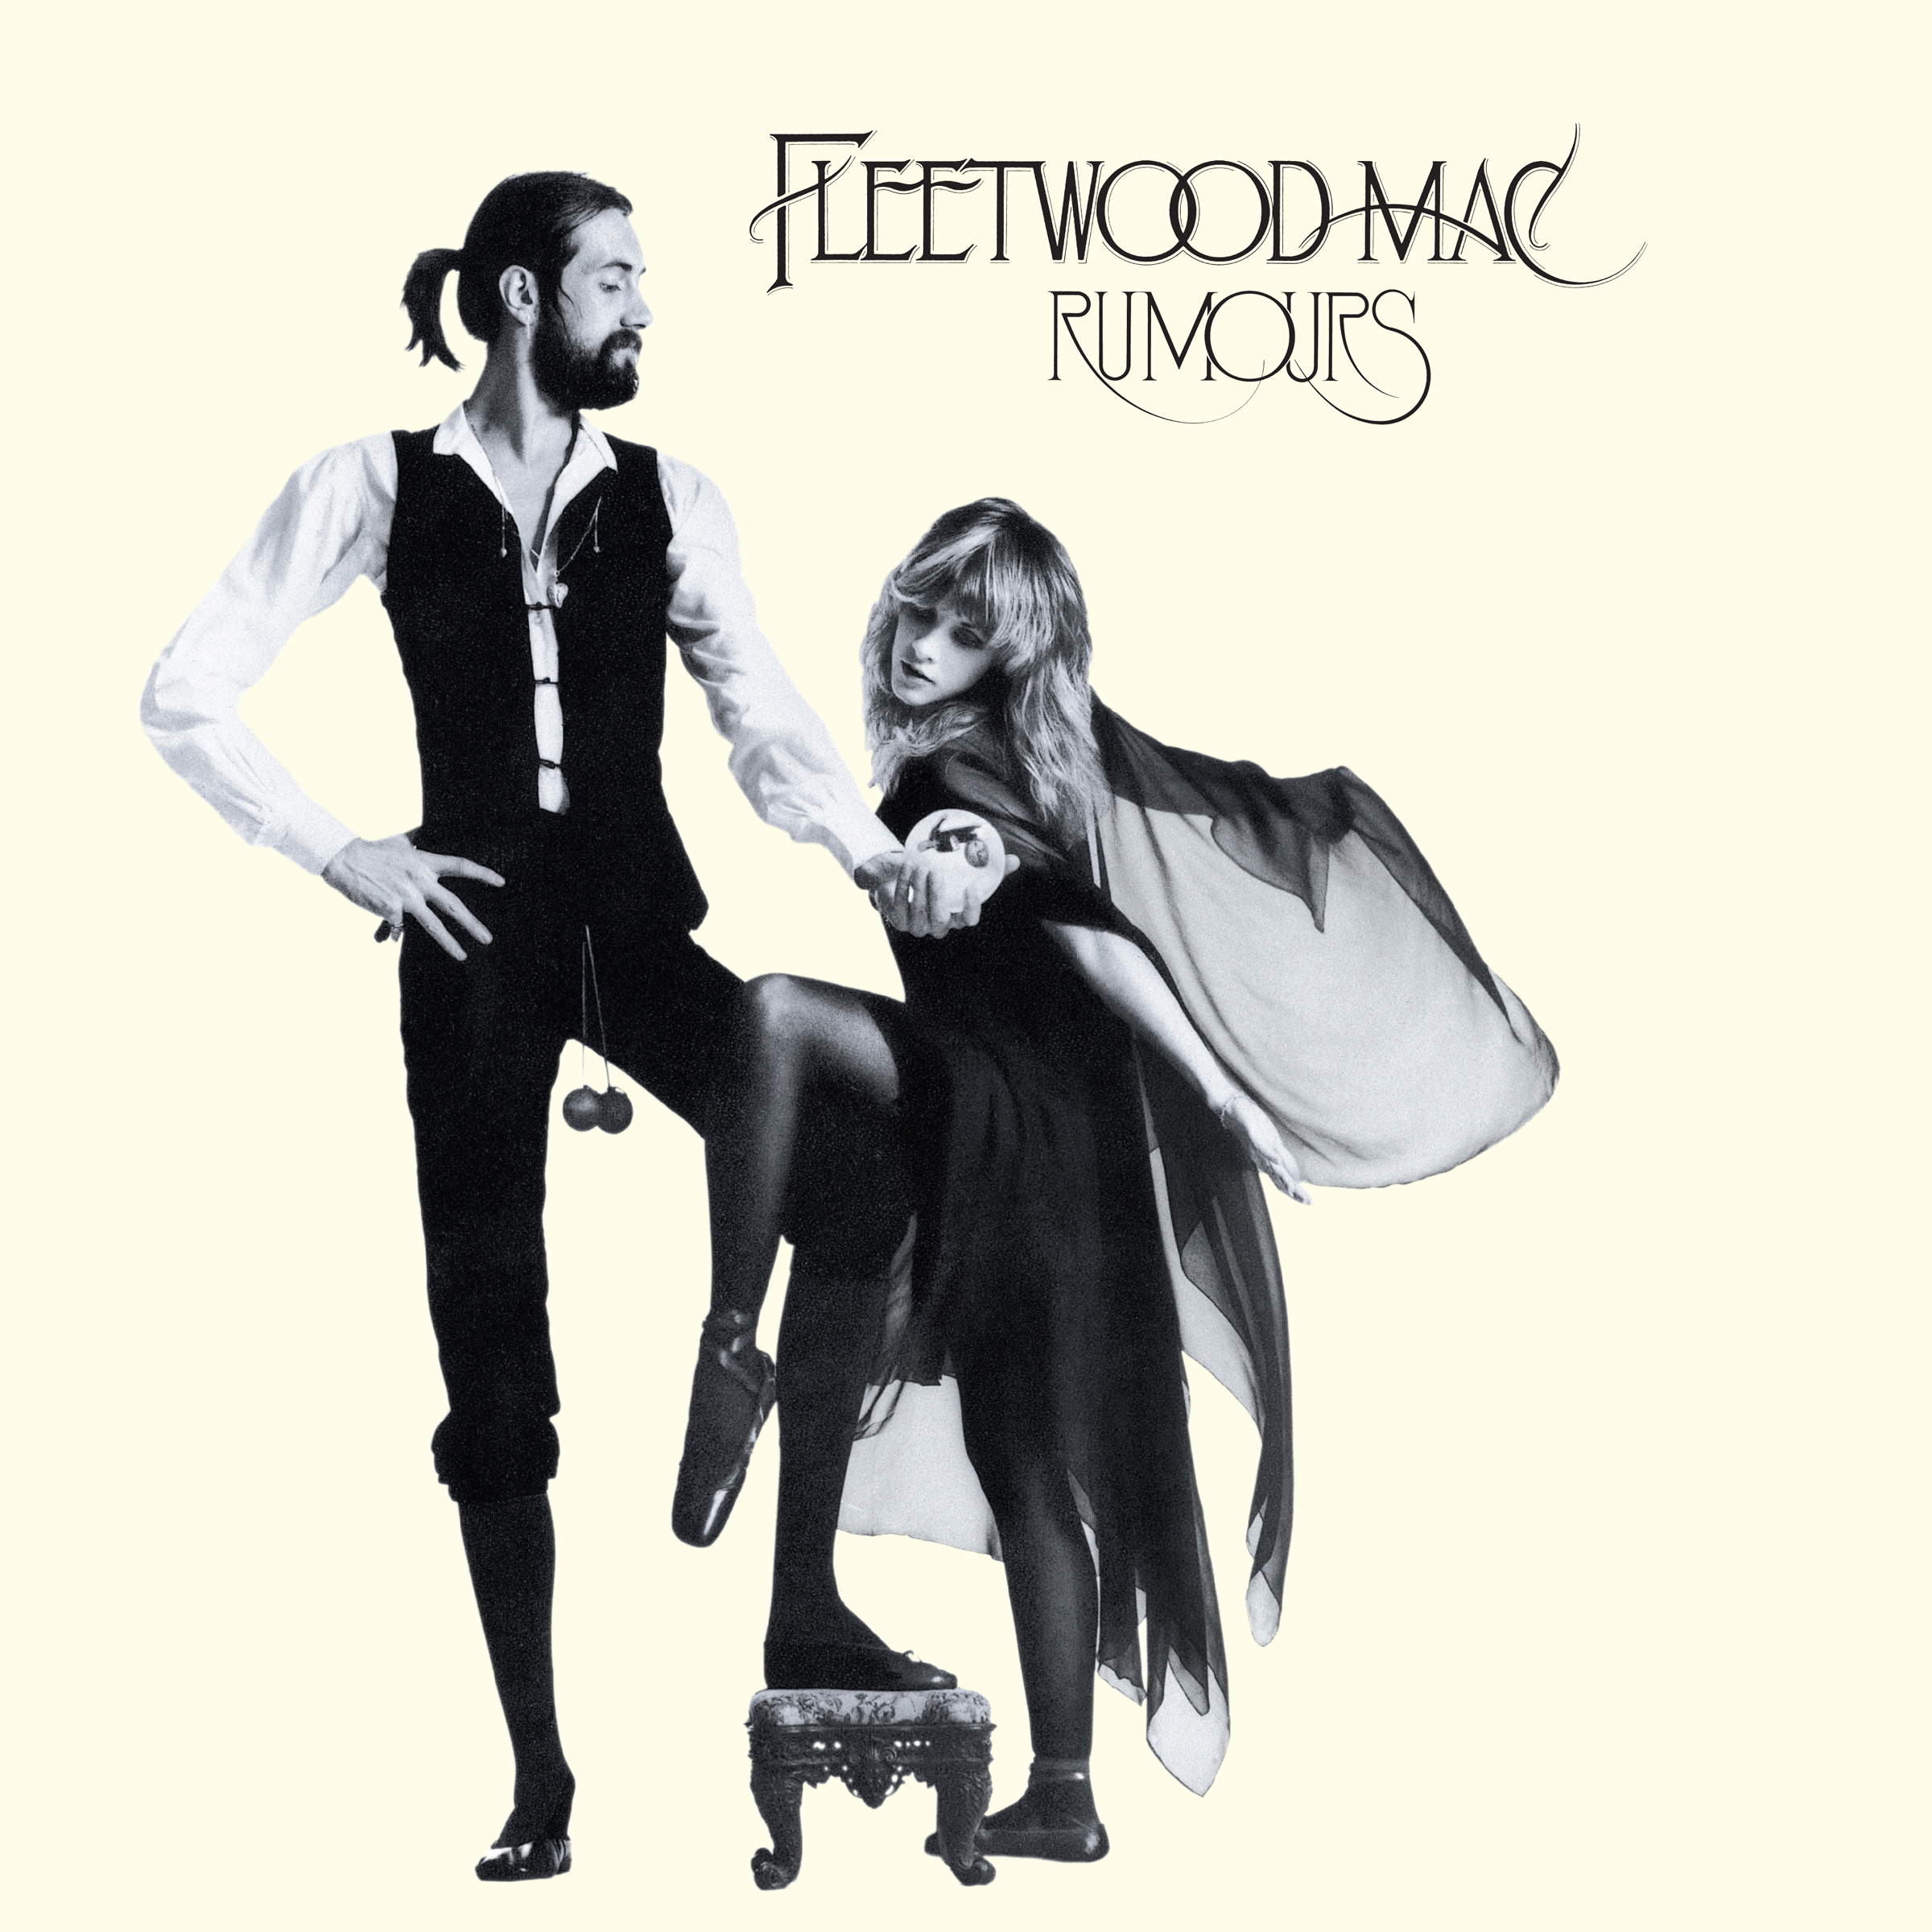 THE RUMOURS ARE TRUE! FLEETWOOD MAC TO REISSUE LANDMARK ALBUM ...